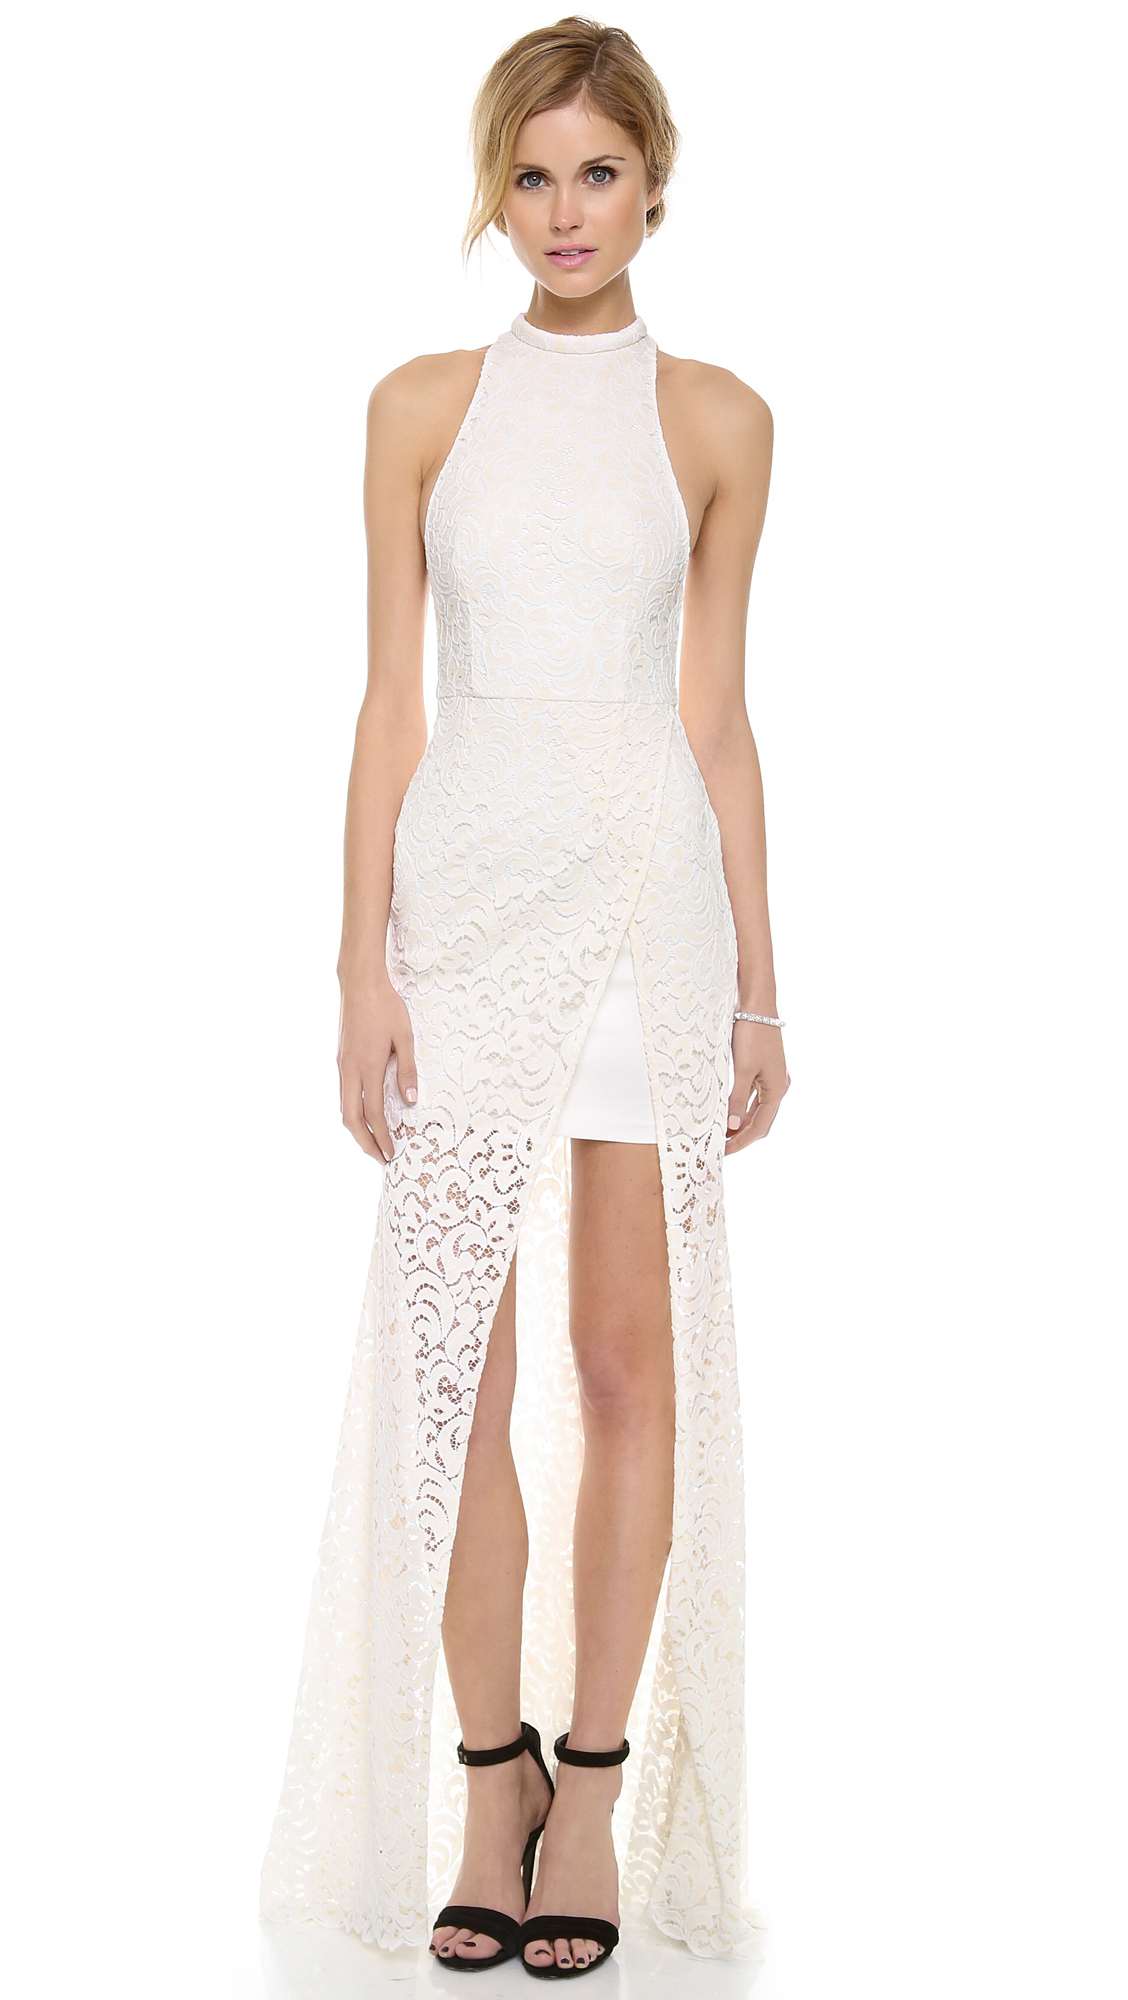 Nicholas Paisley Lace Maxi Dress In White Lyst